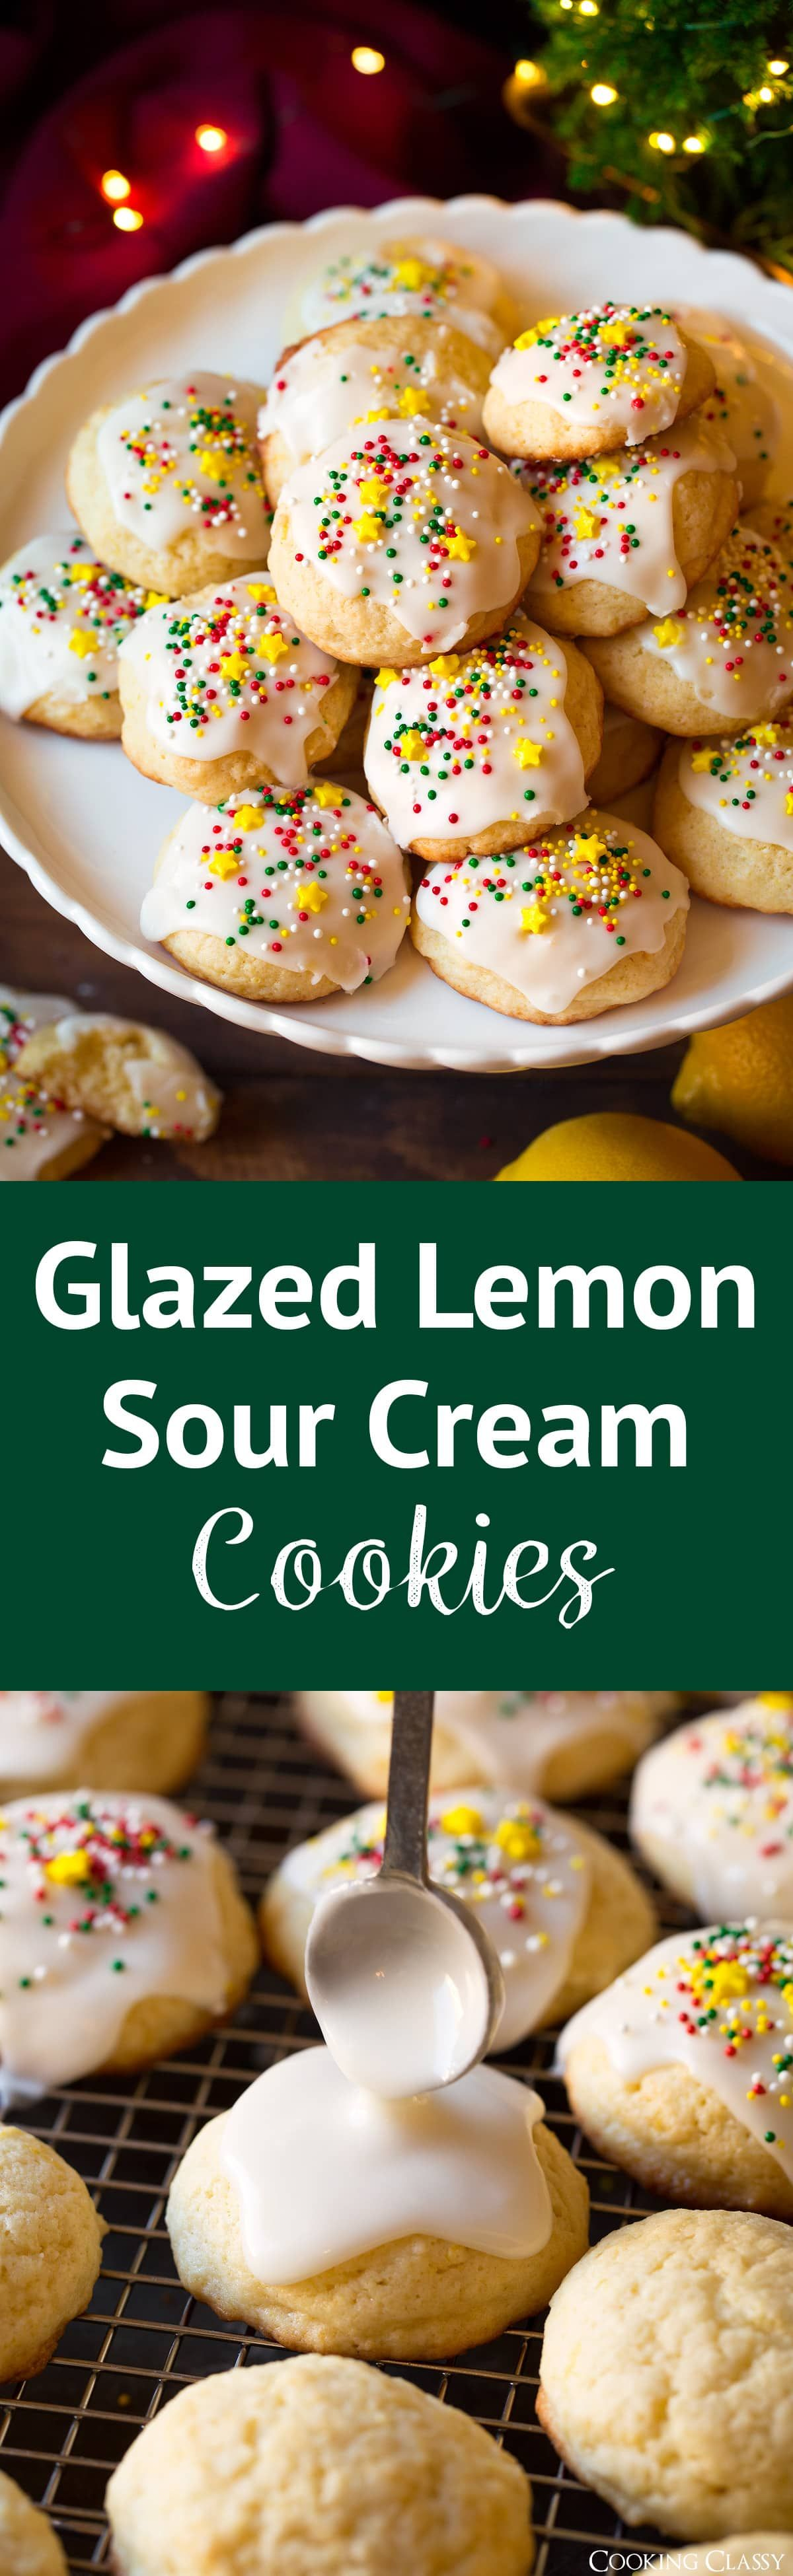 Glazed Lemon Sour Cream Cookies A Melt In Your Mouth Flavorful Super Soft Cookie That S To Sour Cream Cookies Sugar Cookies Recipe Sour Cream Sugar Cookies